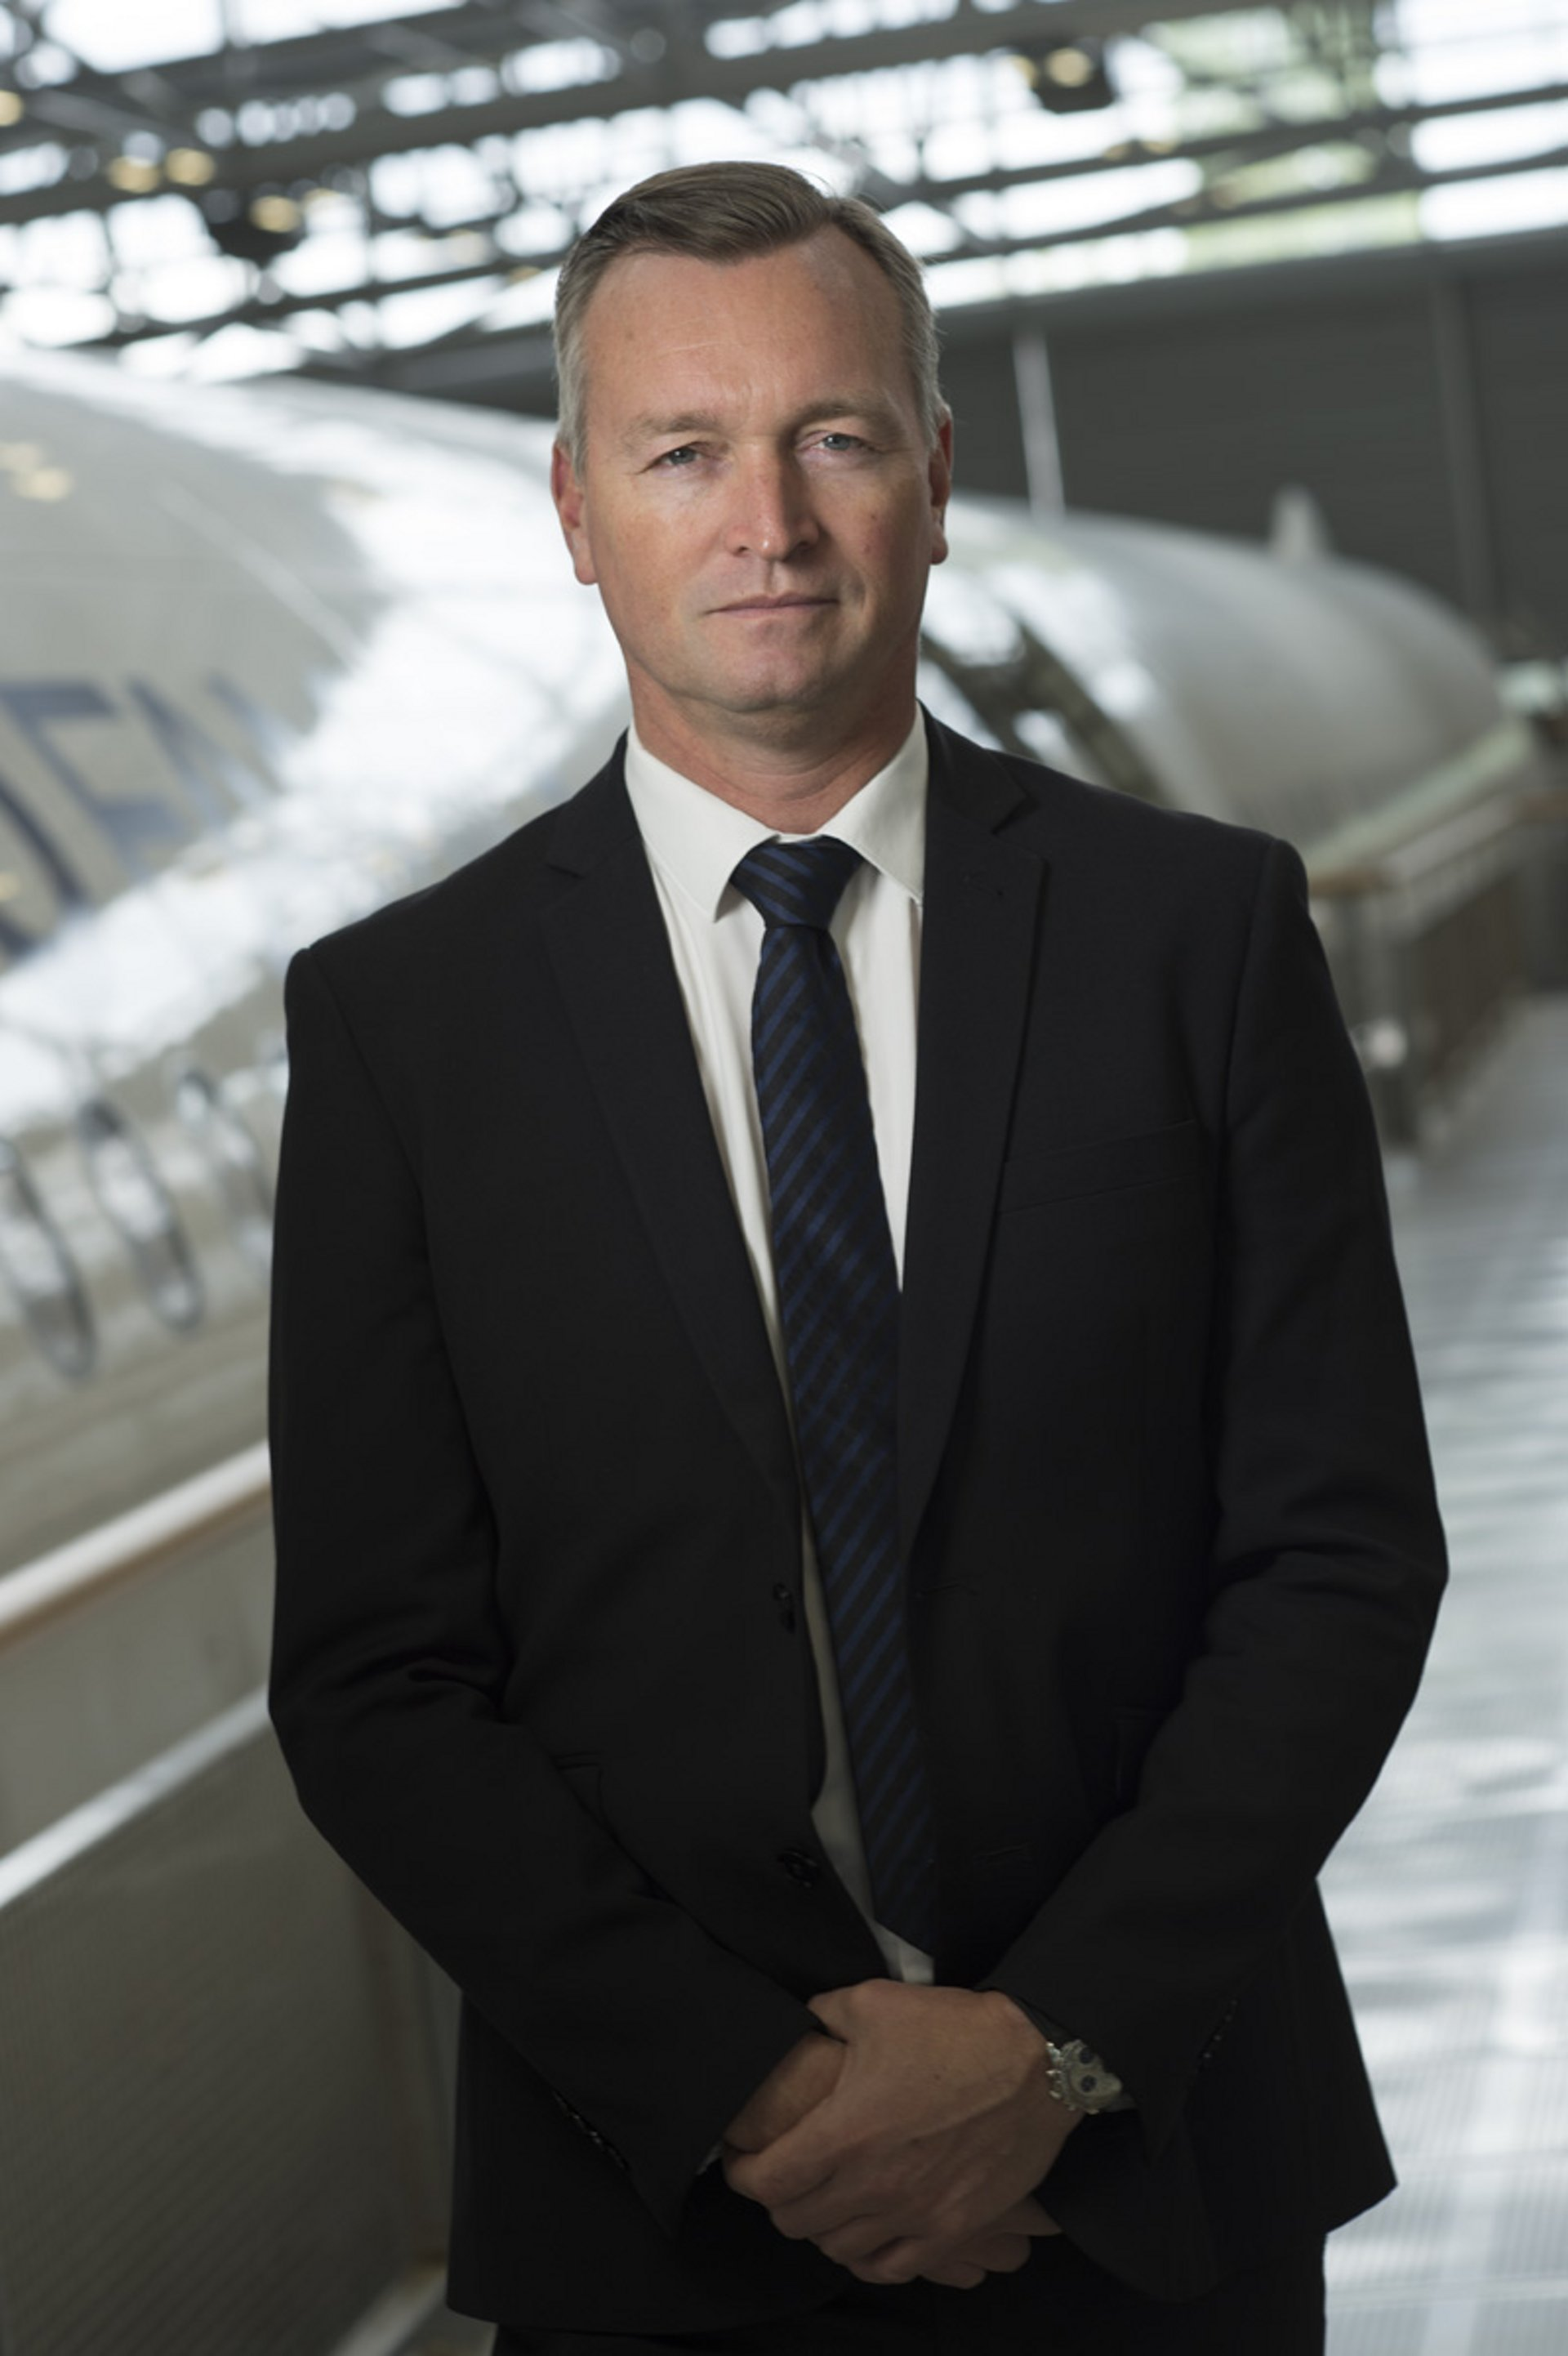 Marc Fontaine, Chief Technology & Digital Transformation Officer of Airbus